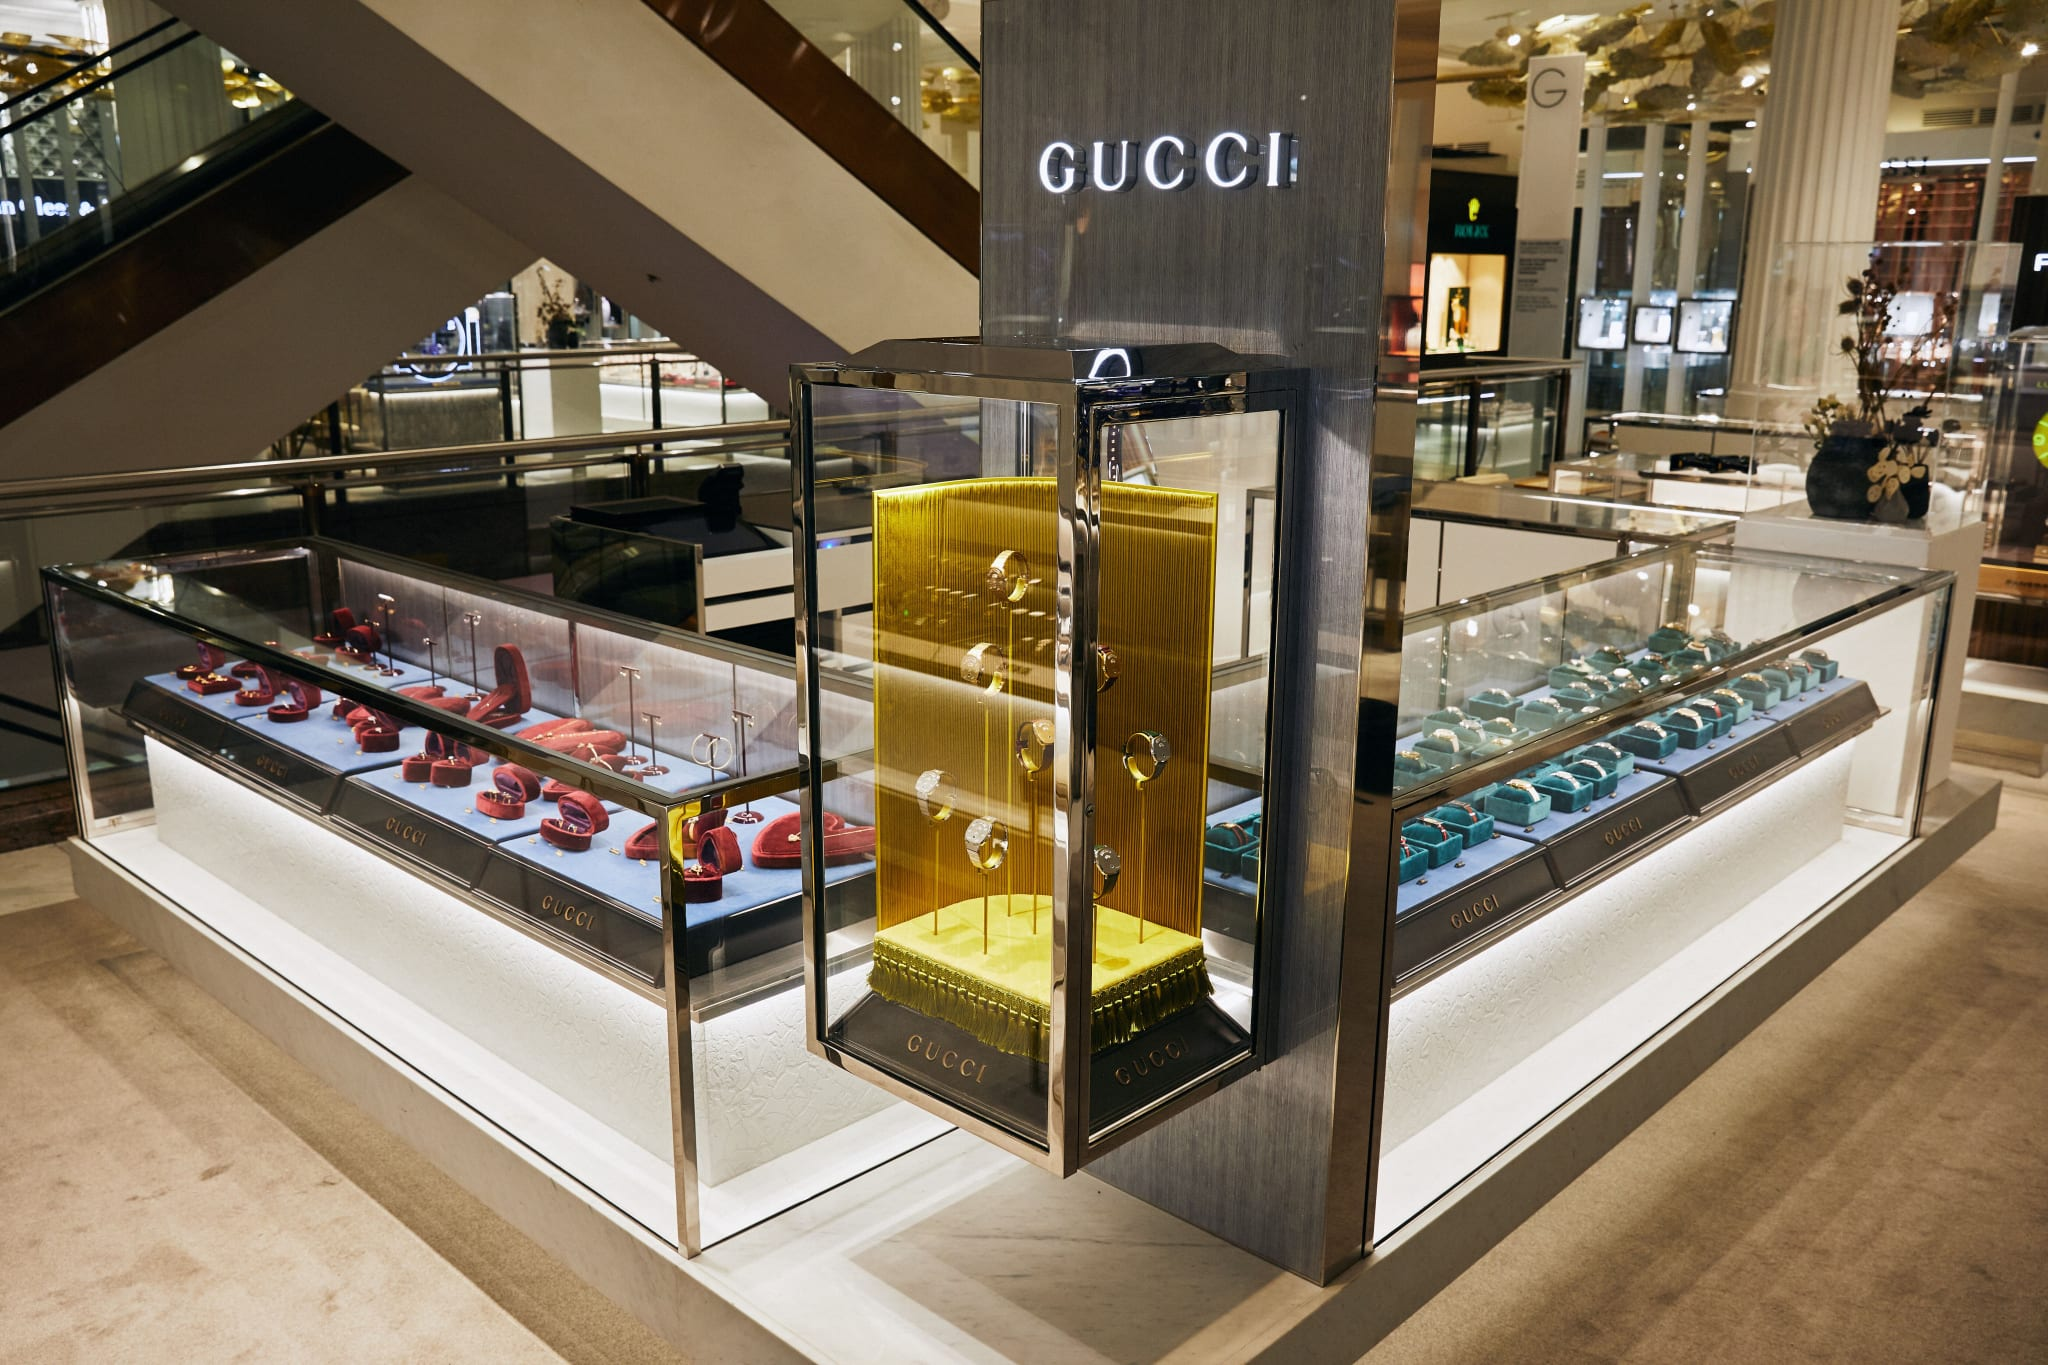 Selfridges Gucci display